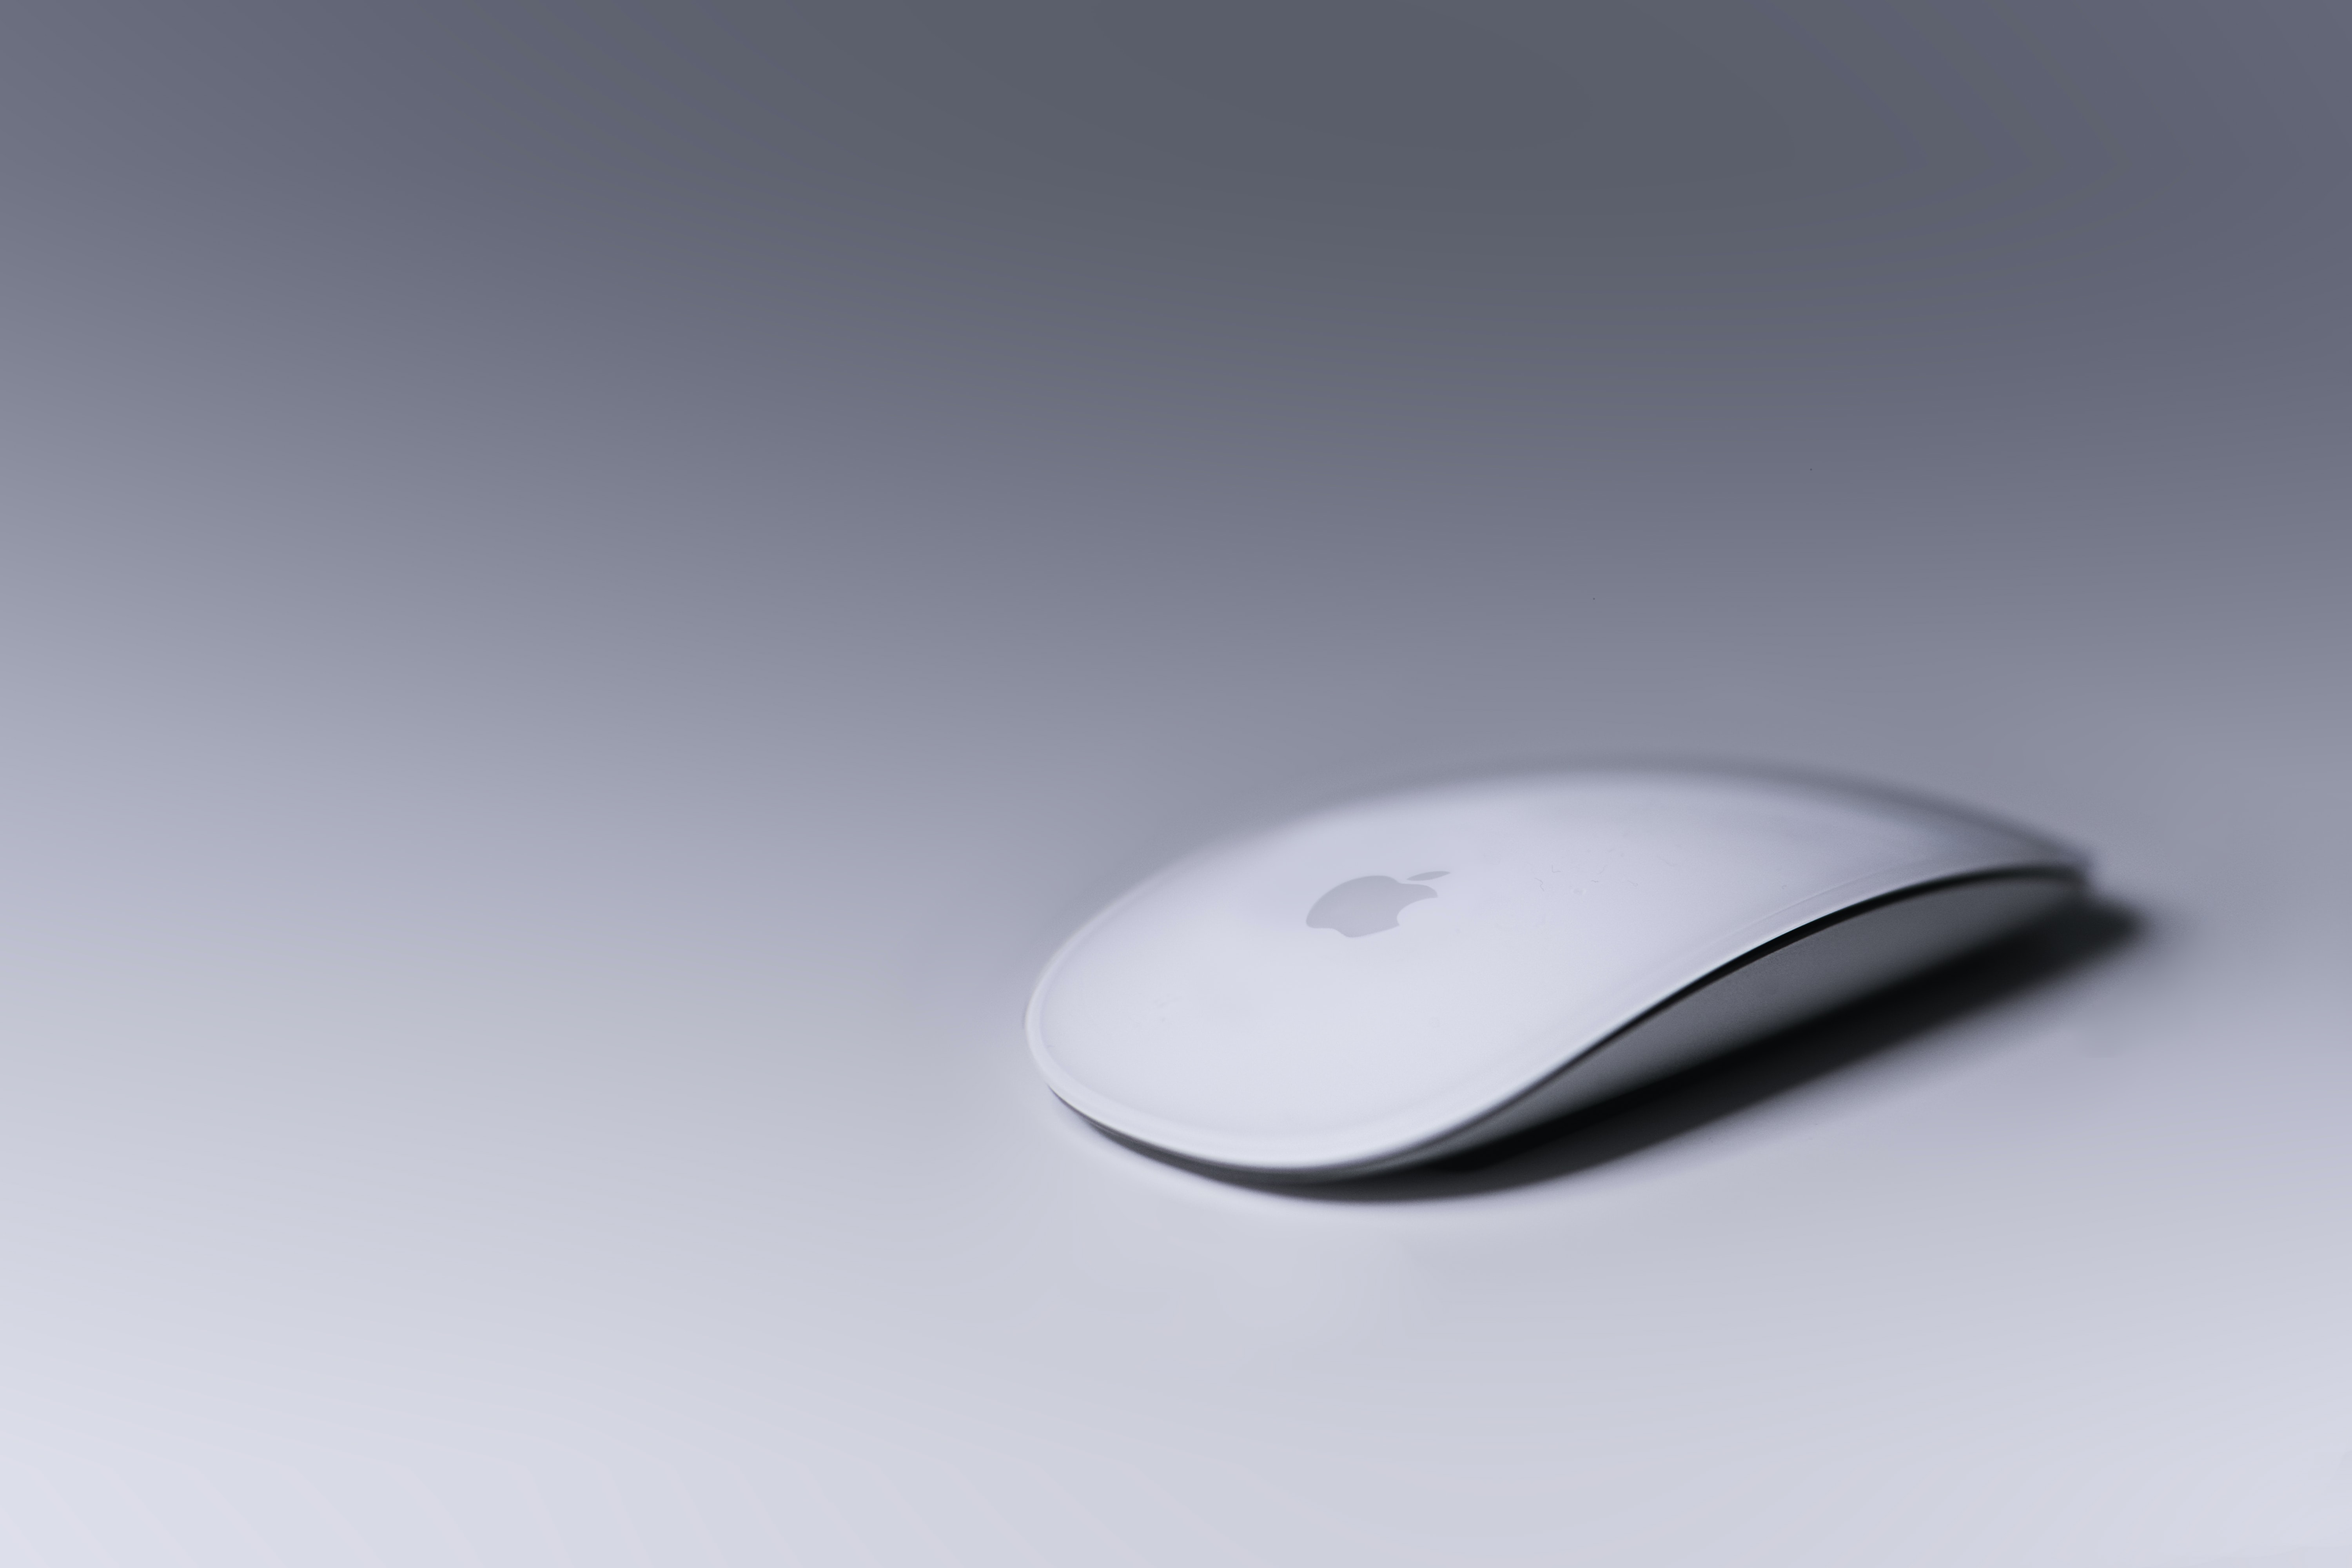 A white Apple mouse.